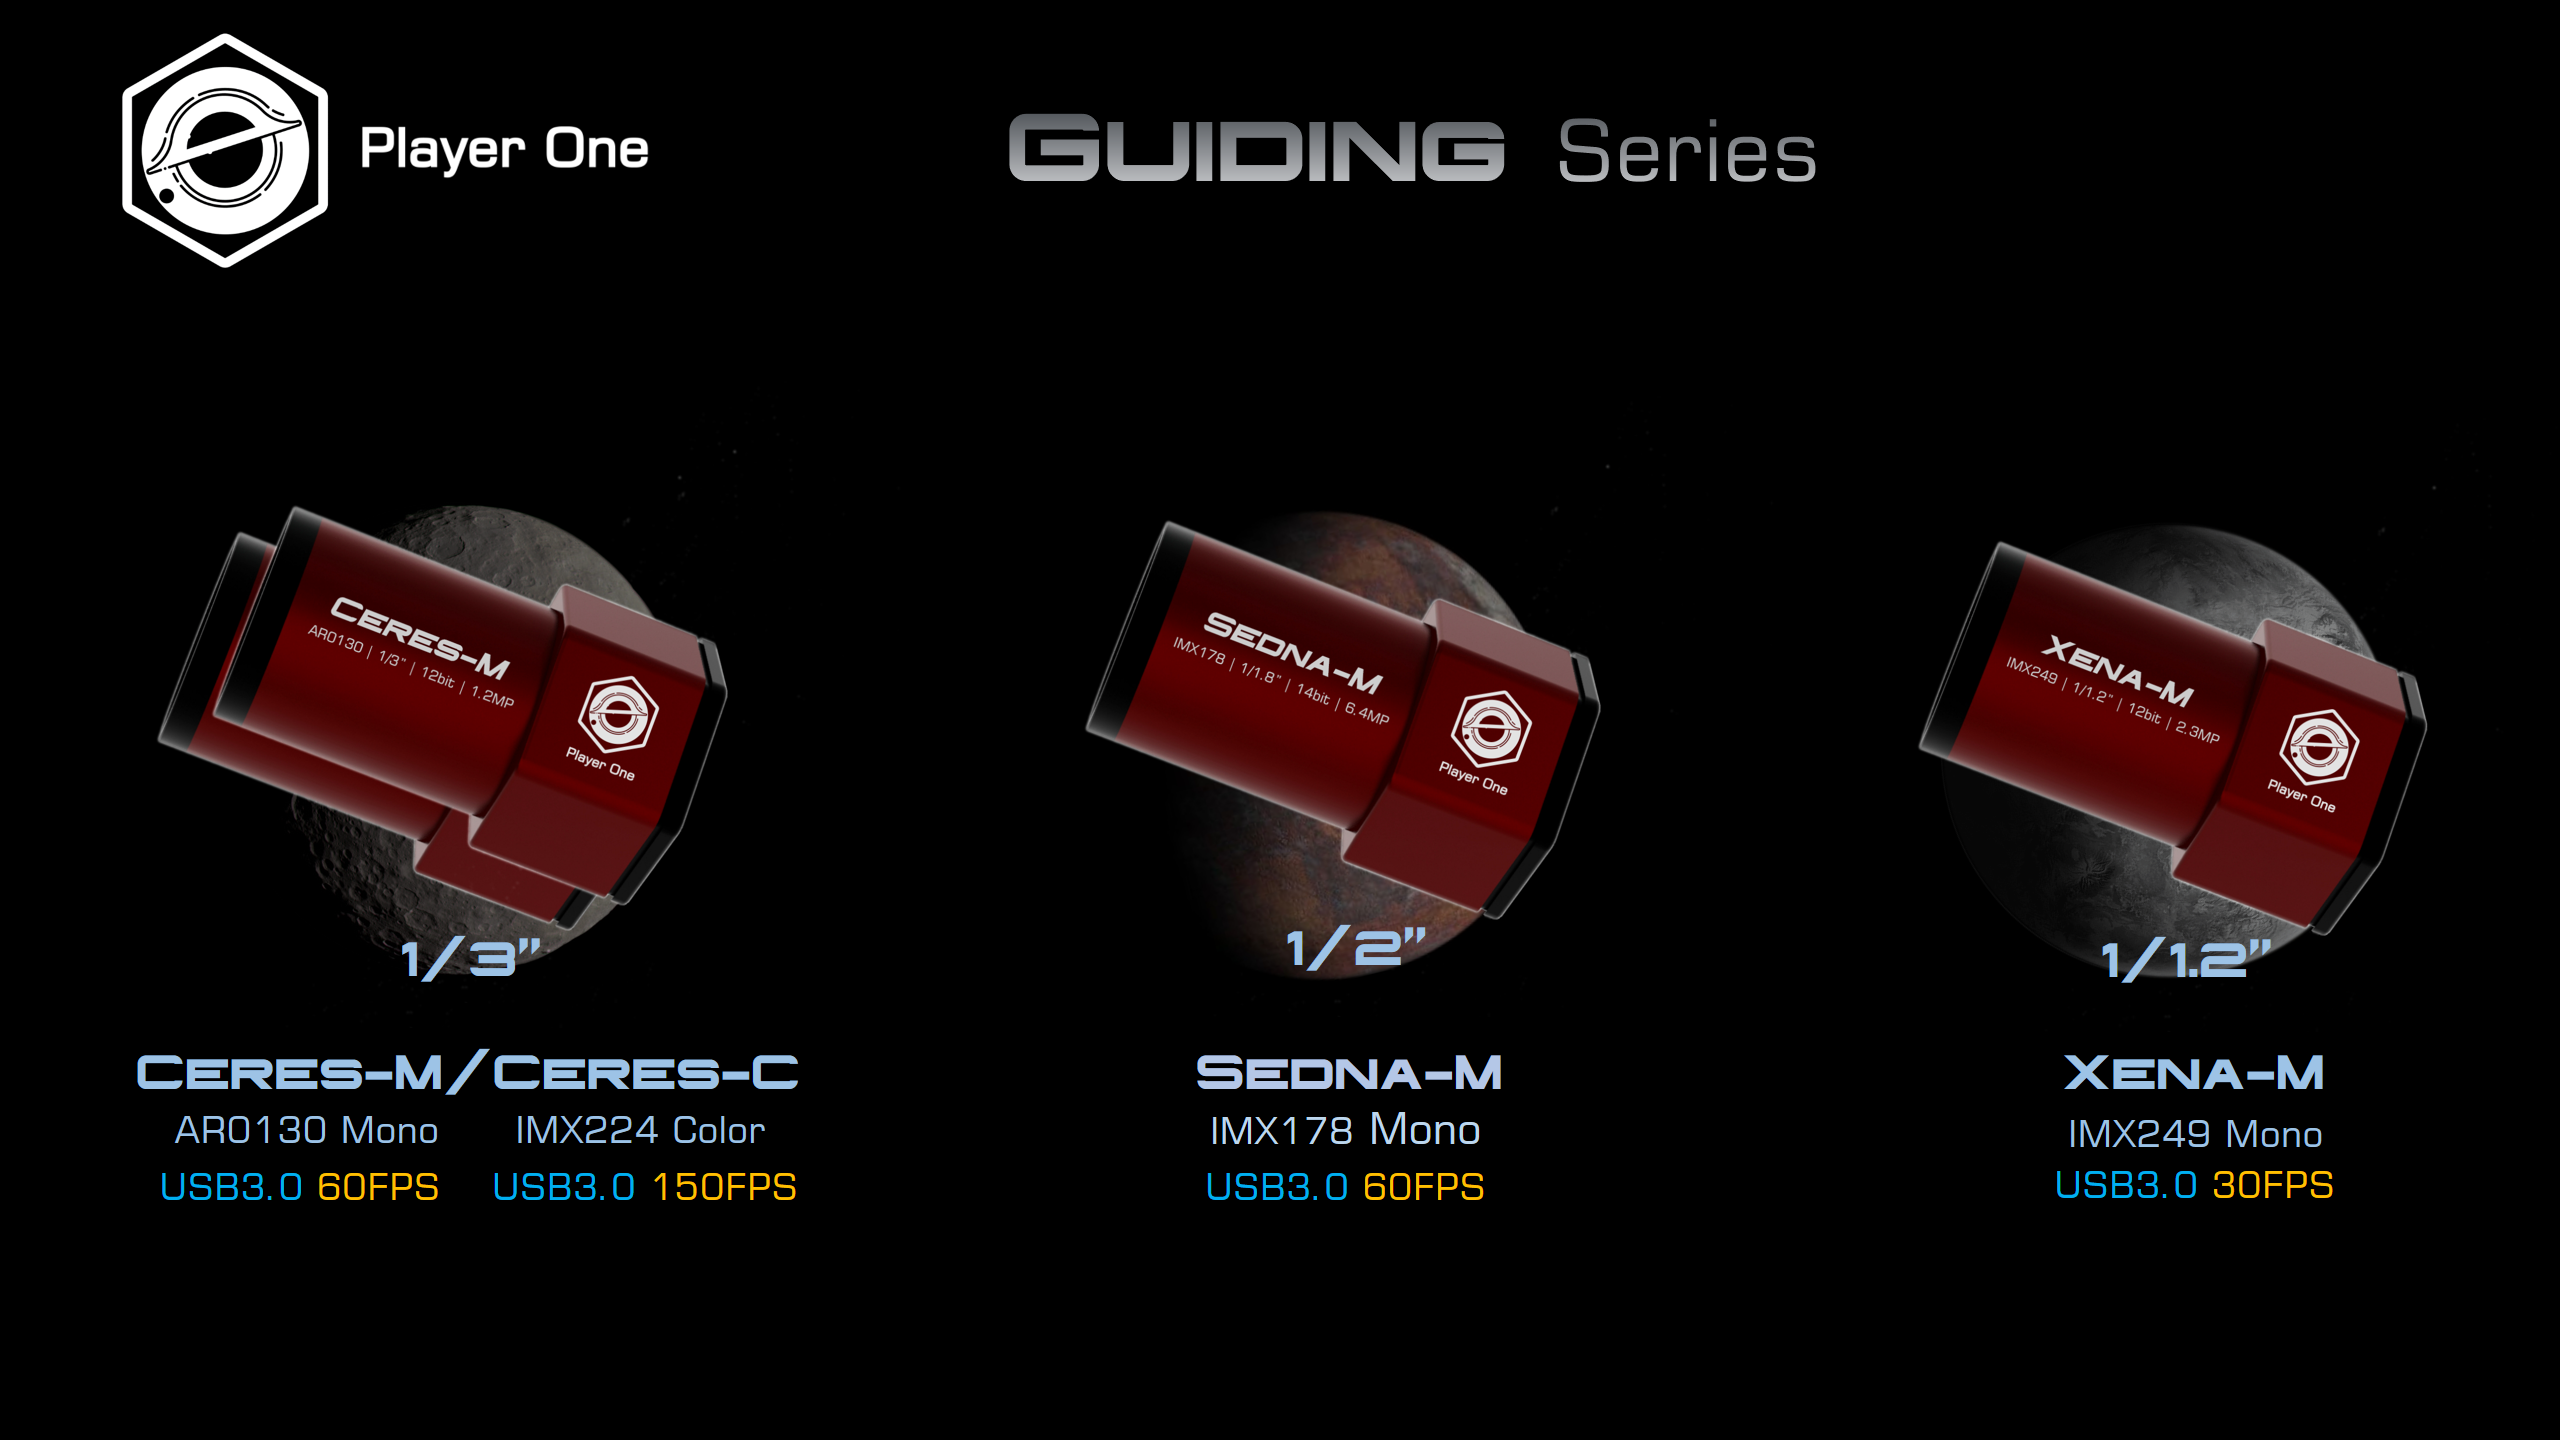 Guiding camera series (AKA Dwarf Planet Series) released TODAY!